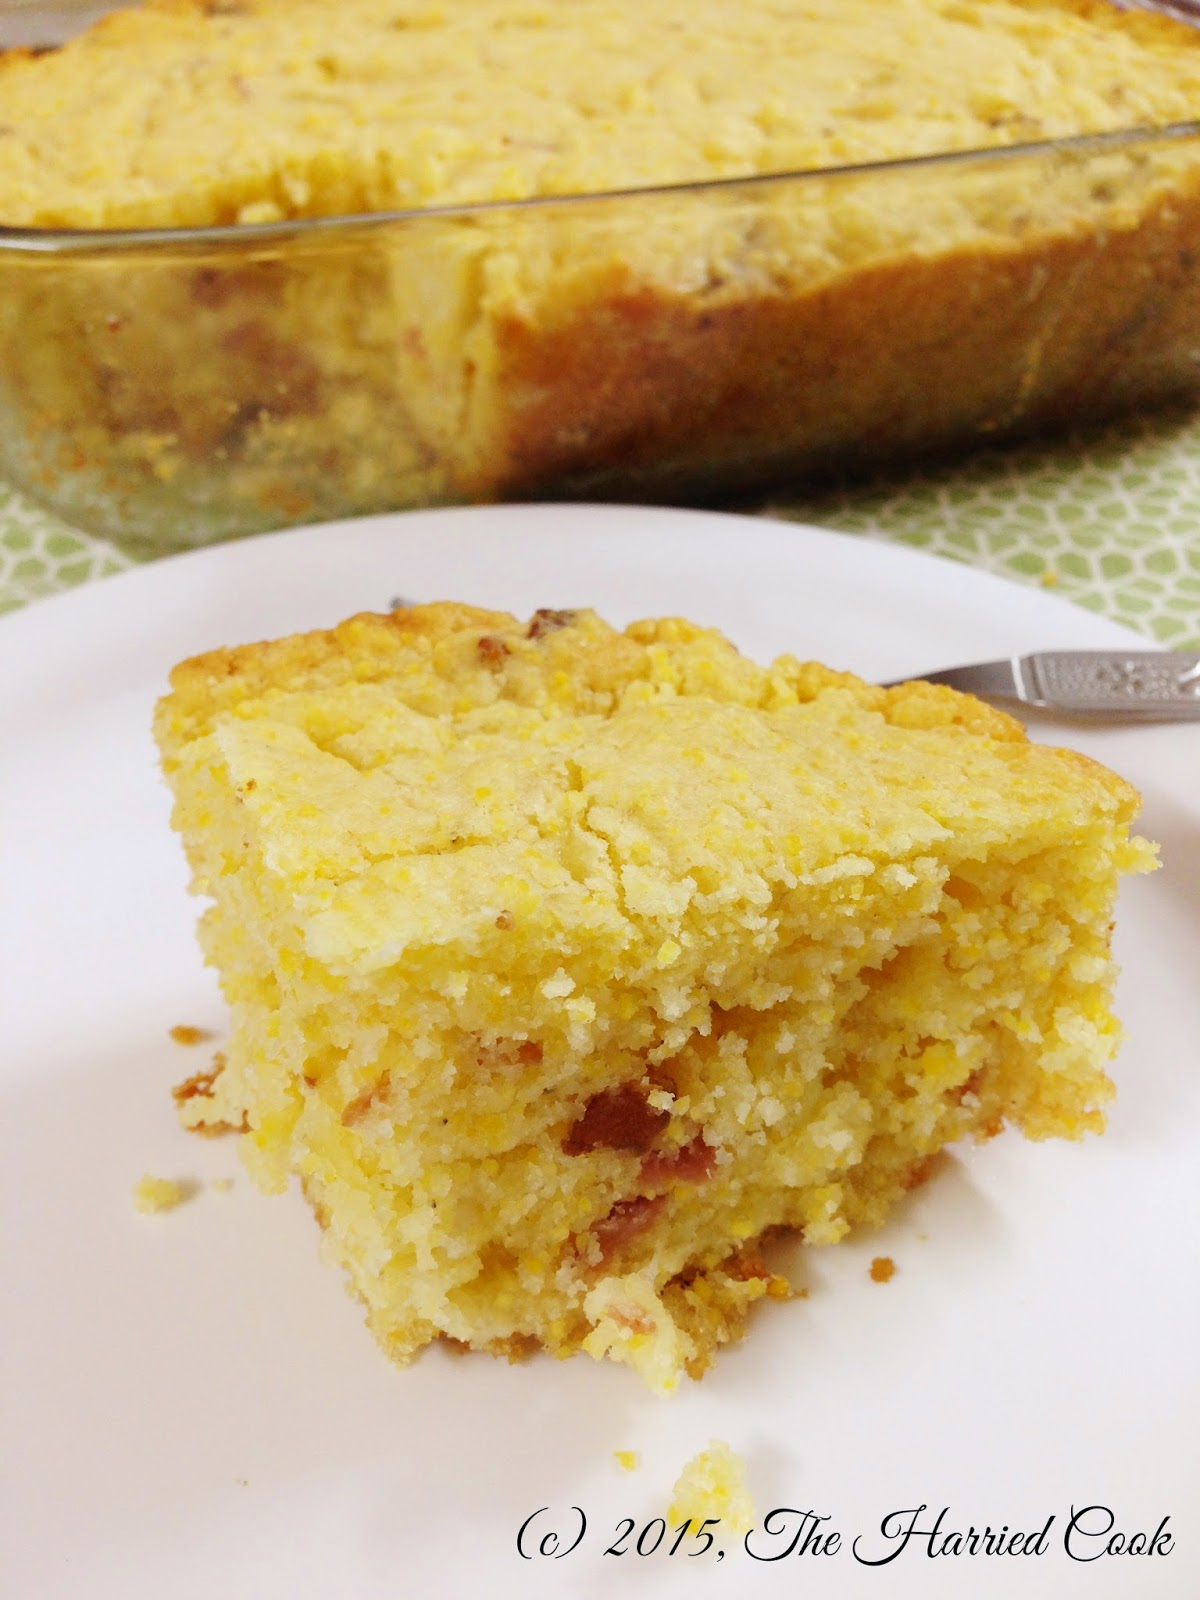 The Harried Cook Secret Recipe Club Bacon Cheddar Cornbread